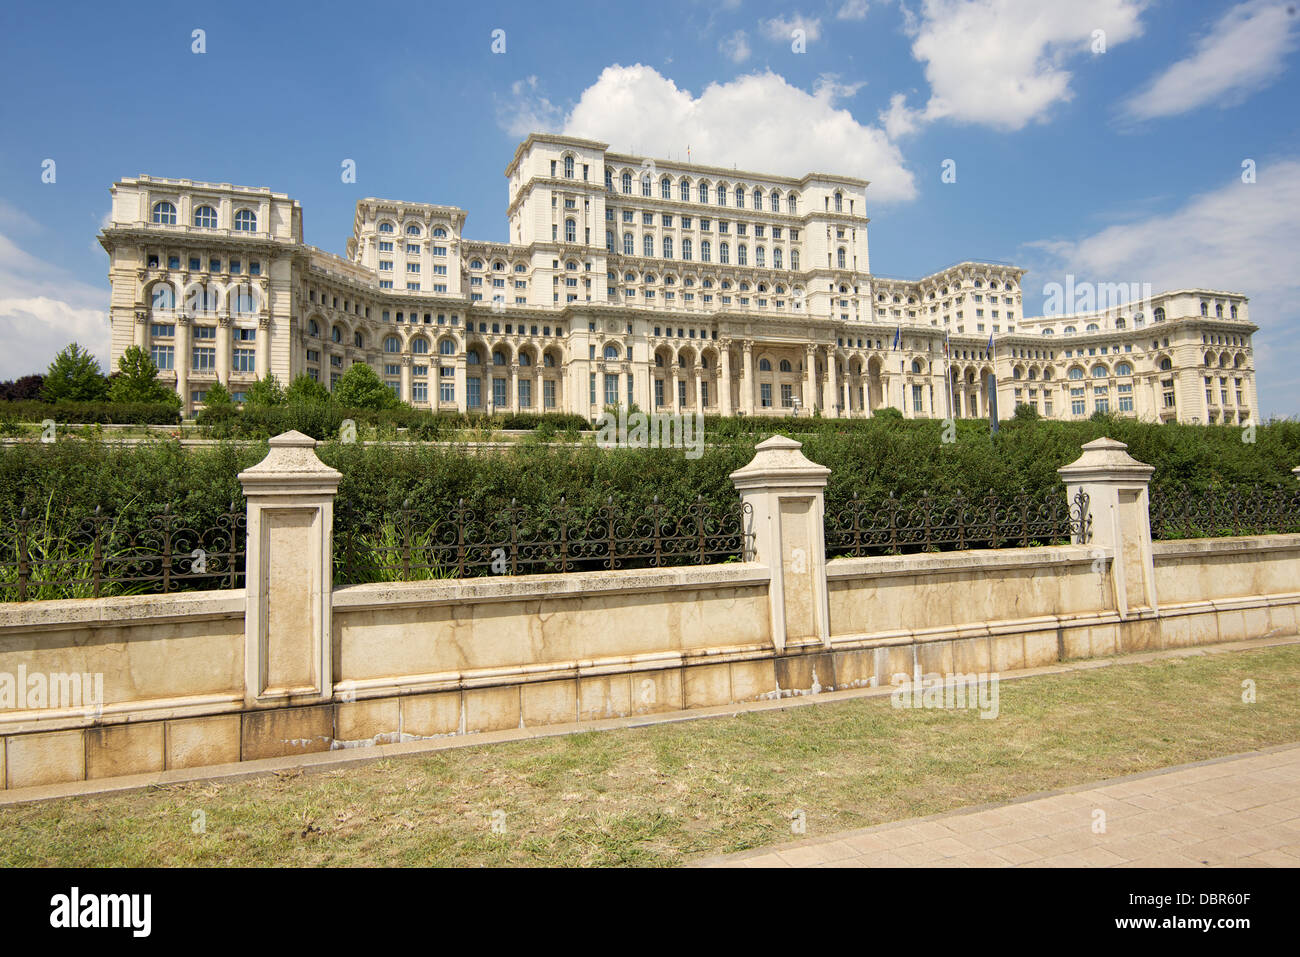 Palace of the Parliament in Romanian capital city of Bucharest - Stock Image